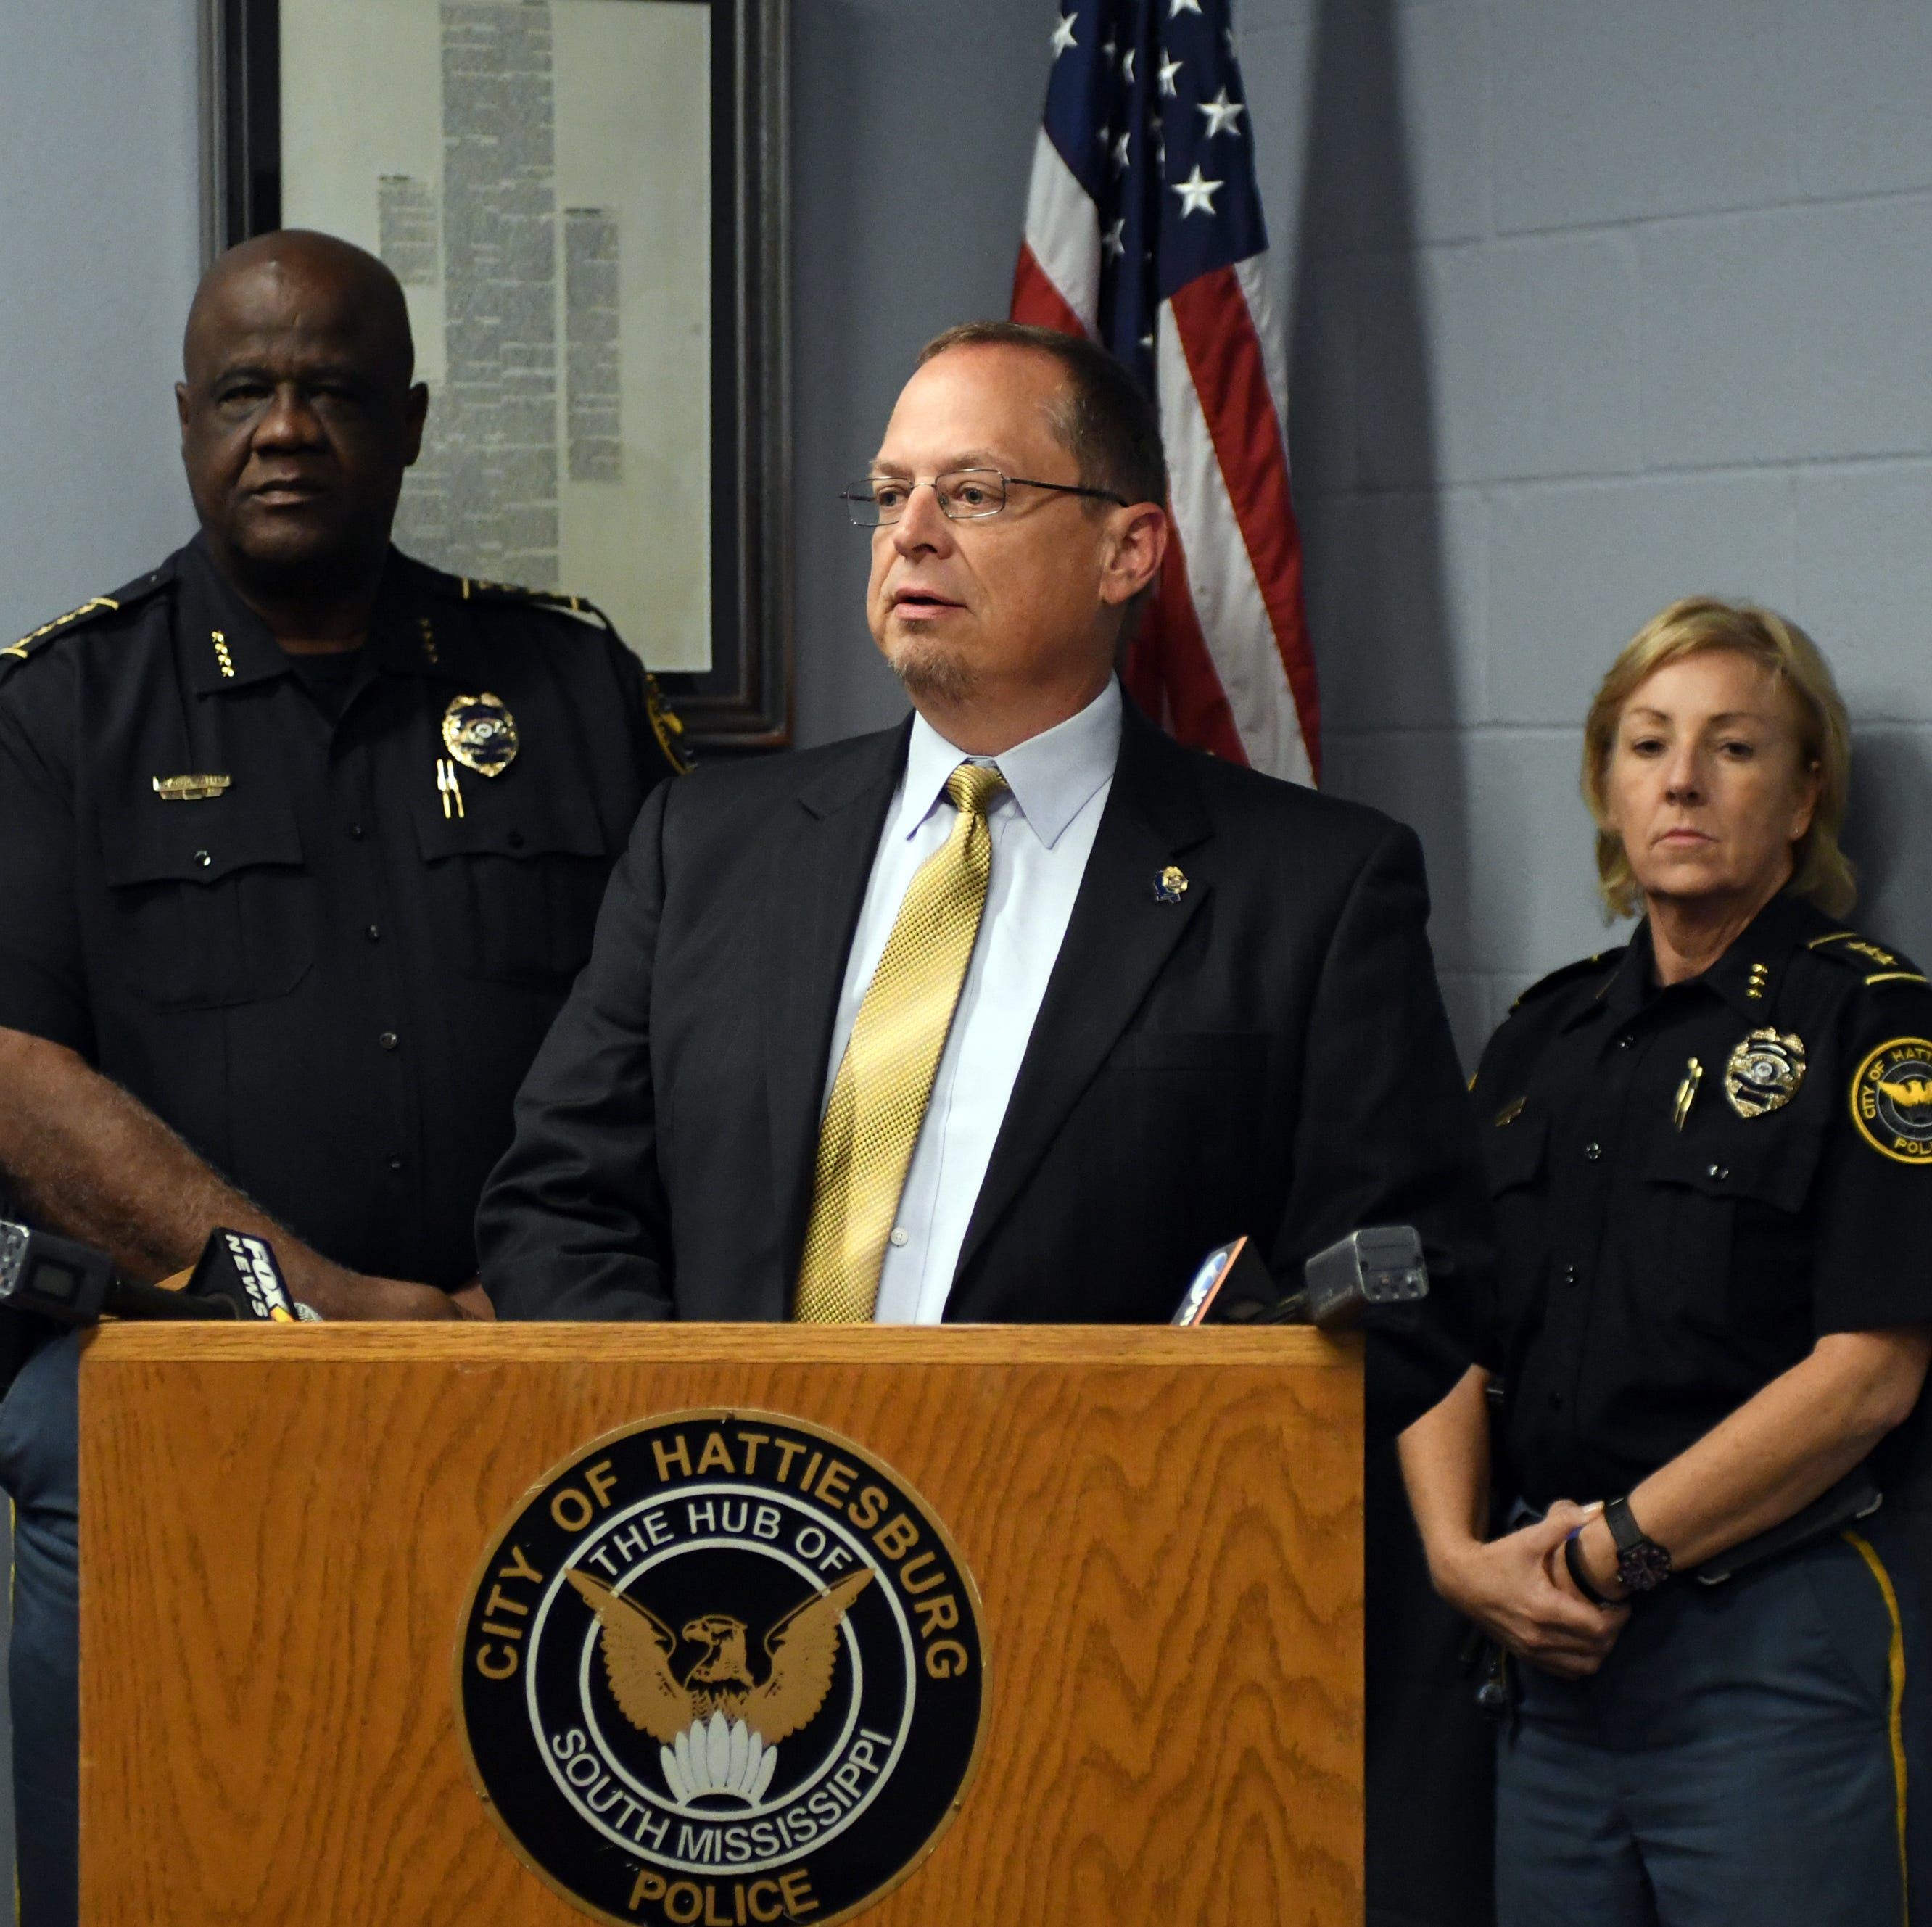 8 charged, 7 sought after long-term, multi-agency investigation in Hattiesburg